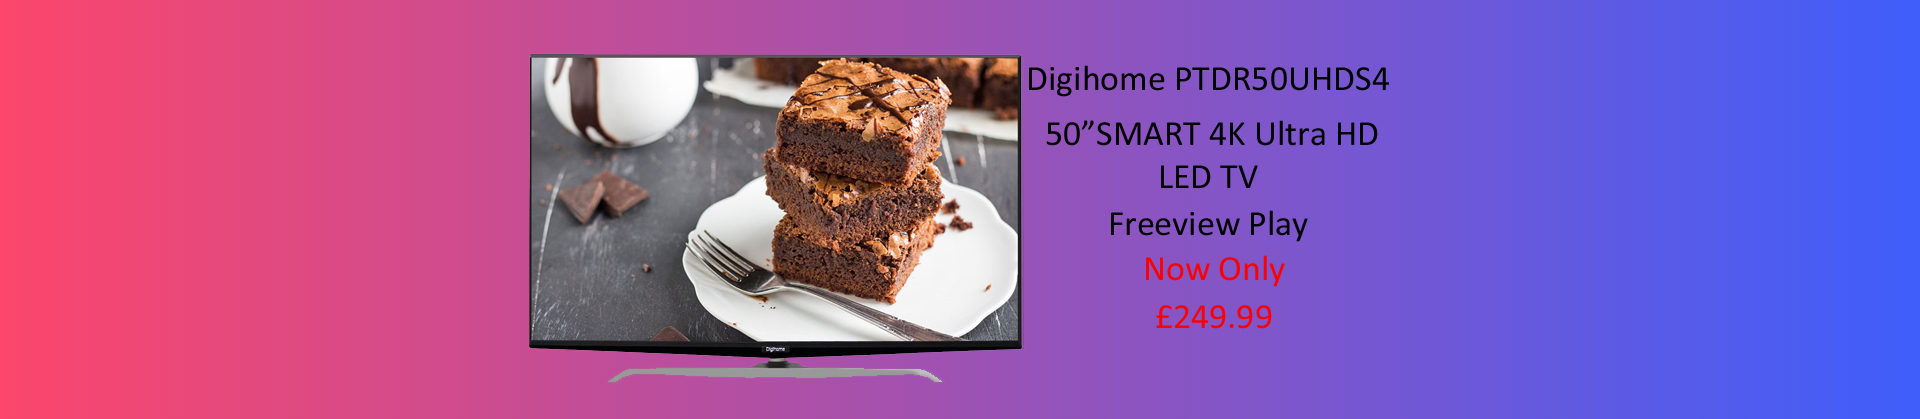 50 inch digihome TV